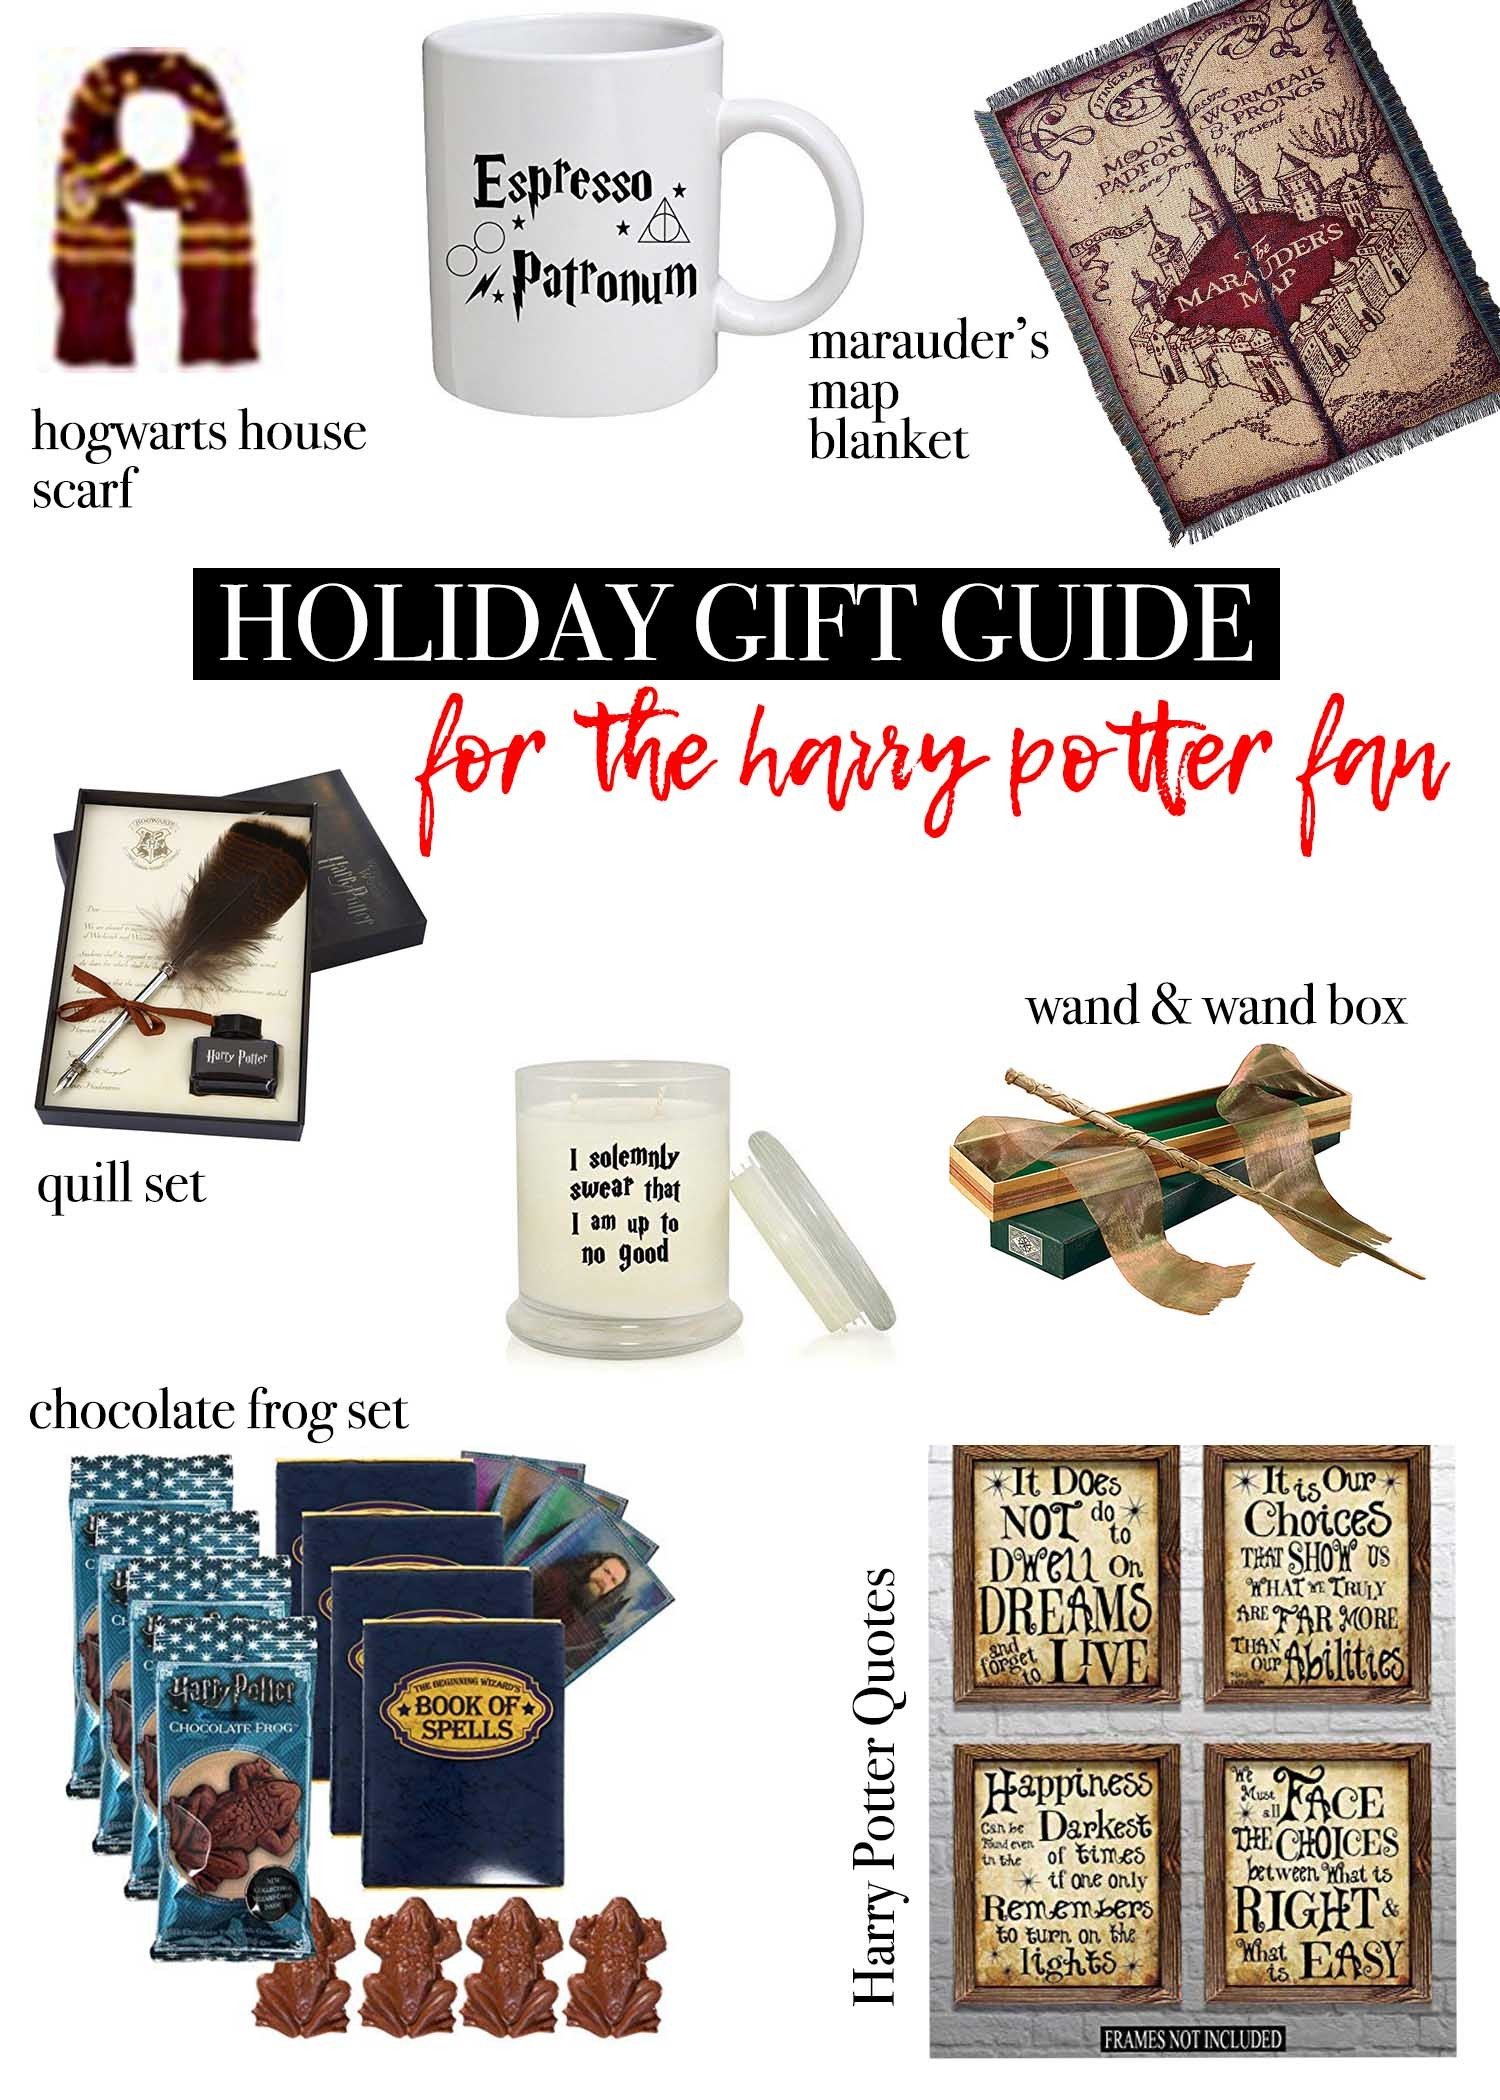 want to see all the holiday gift guides click the ones that interest you below gifts for the fashionista gifts for the harry potter fan